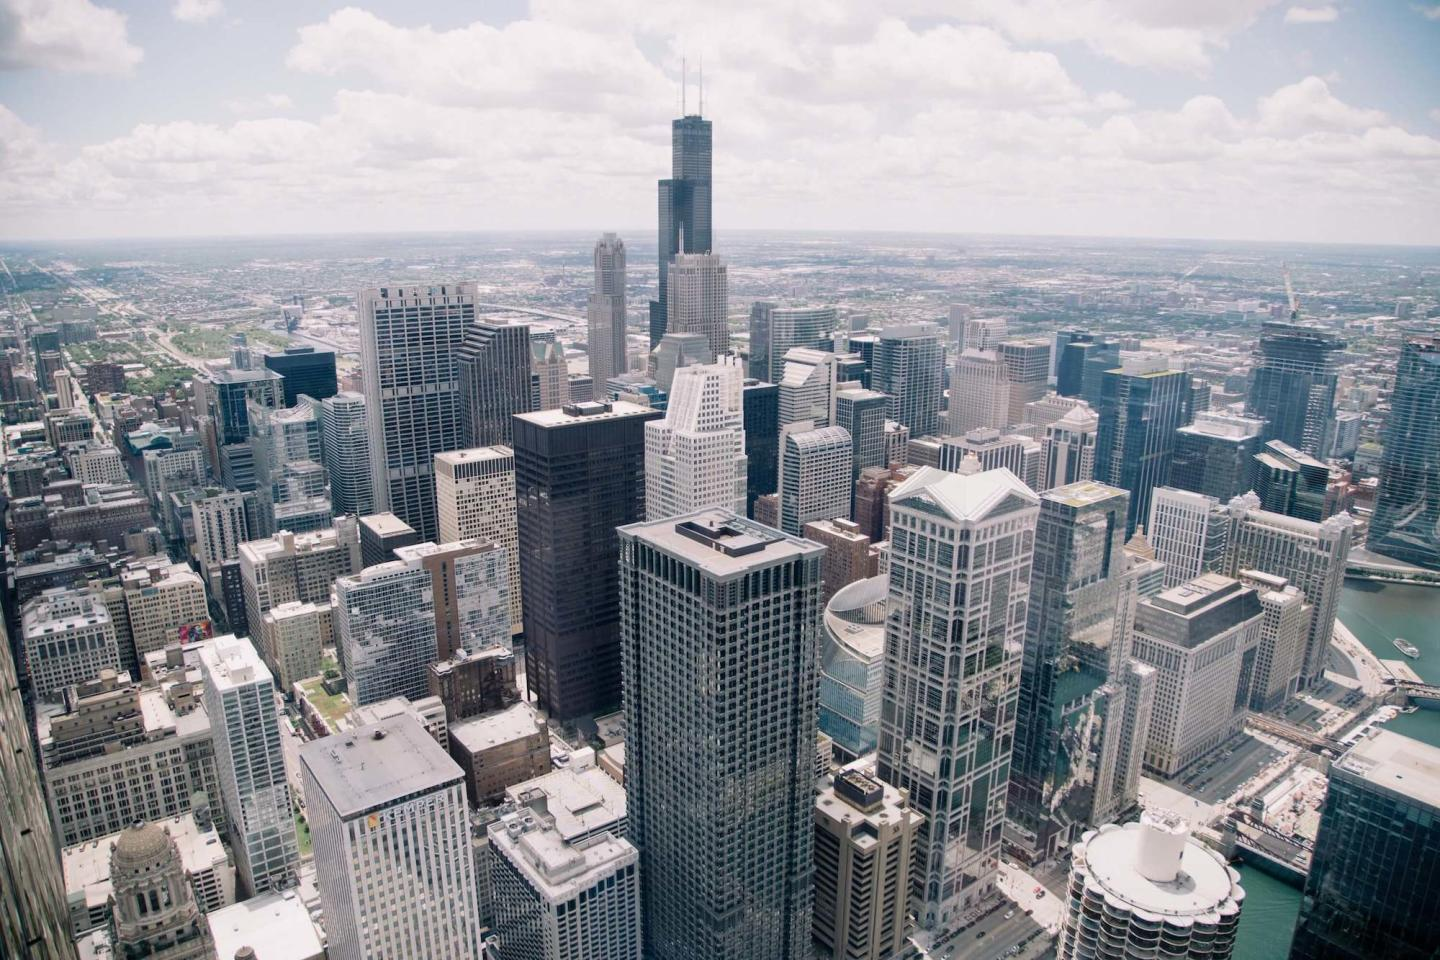 An angled aerial view of Chicago